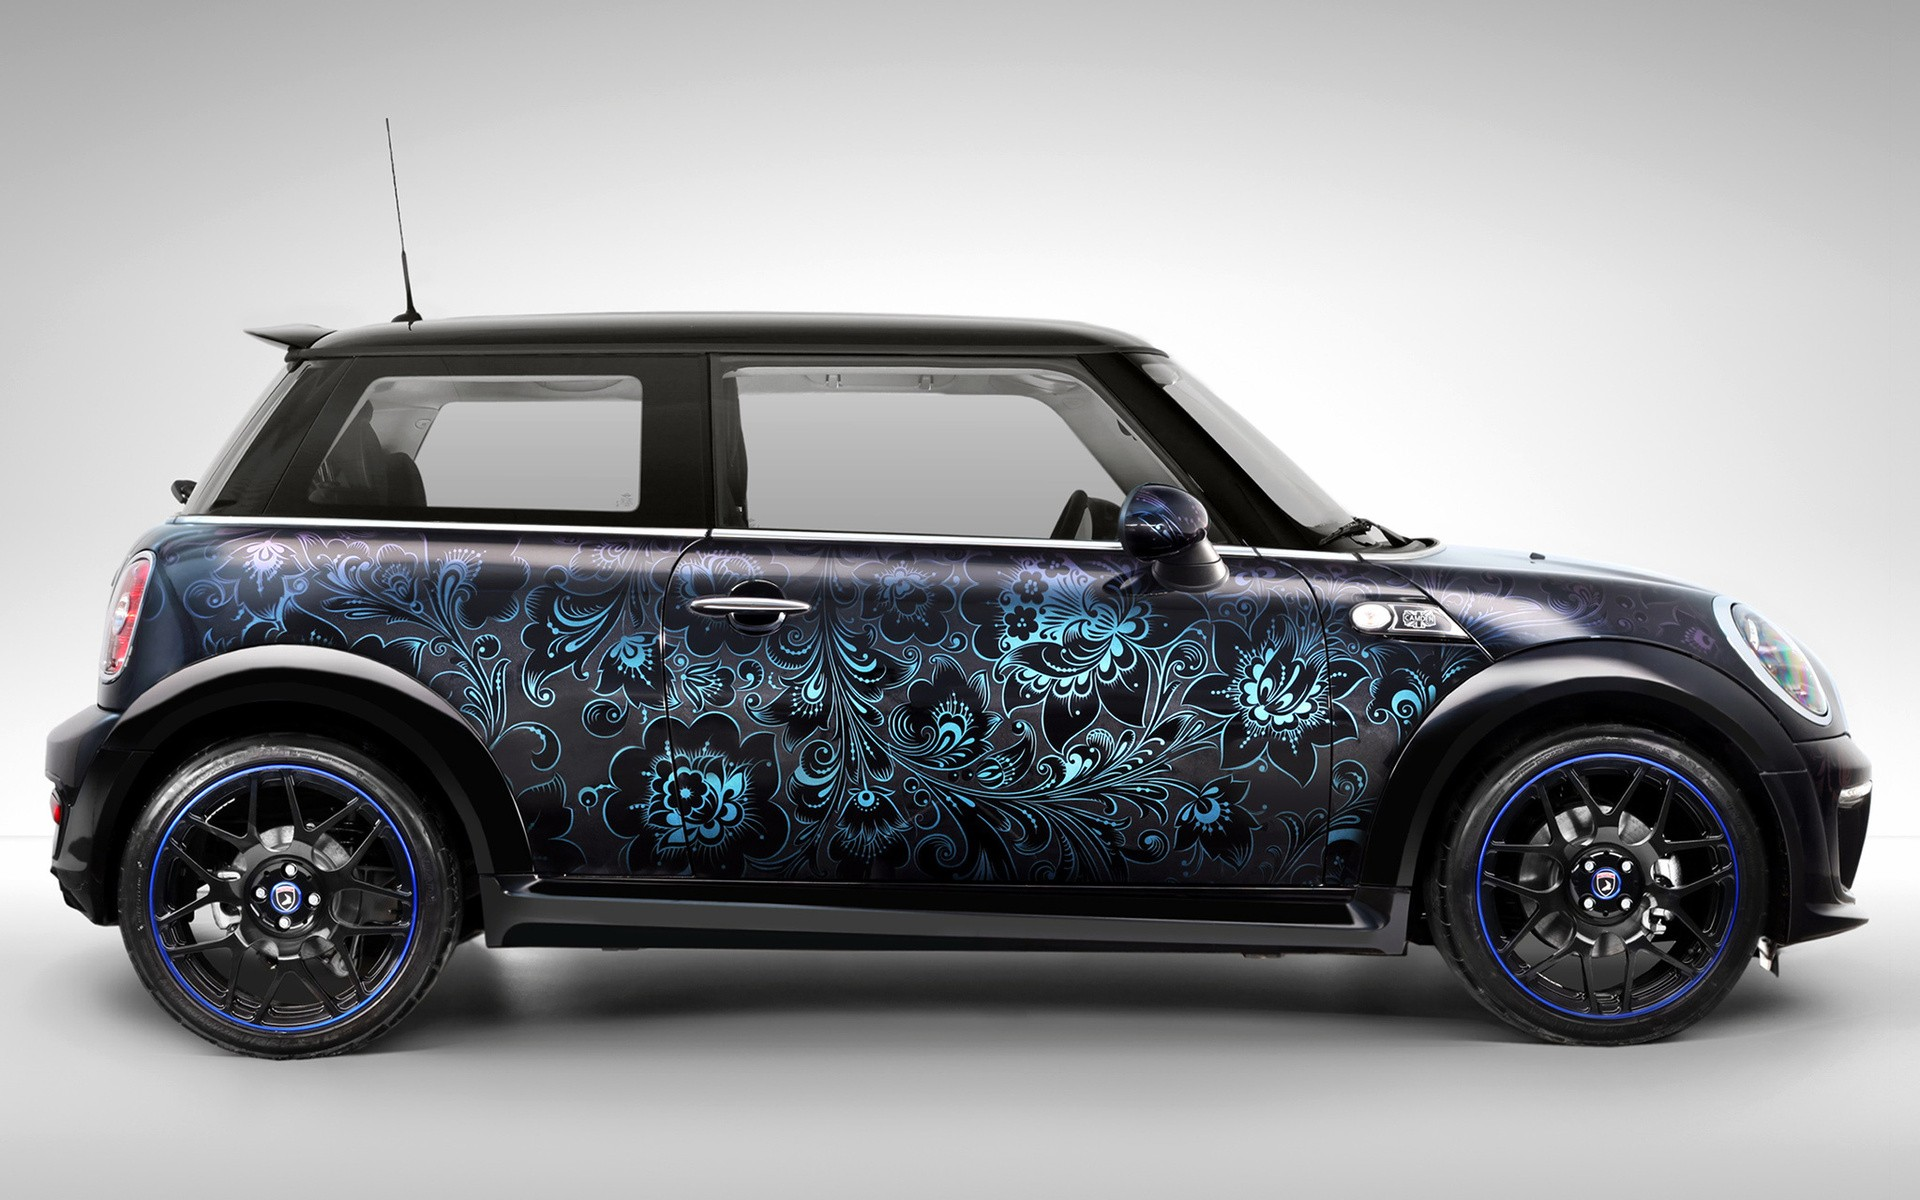 cars mini cooper HD Wallpapers 183 iBackgroundWallpaper 1920x1200